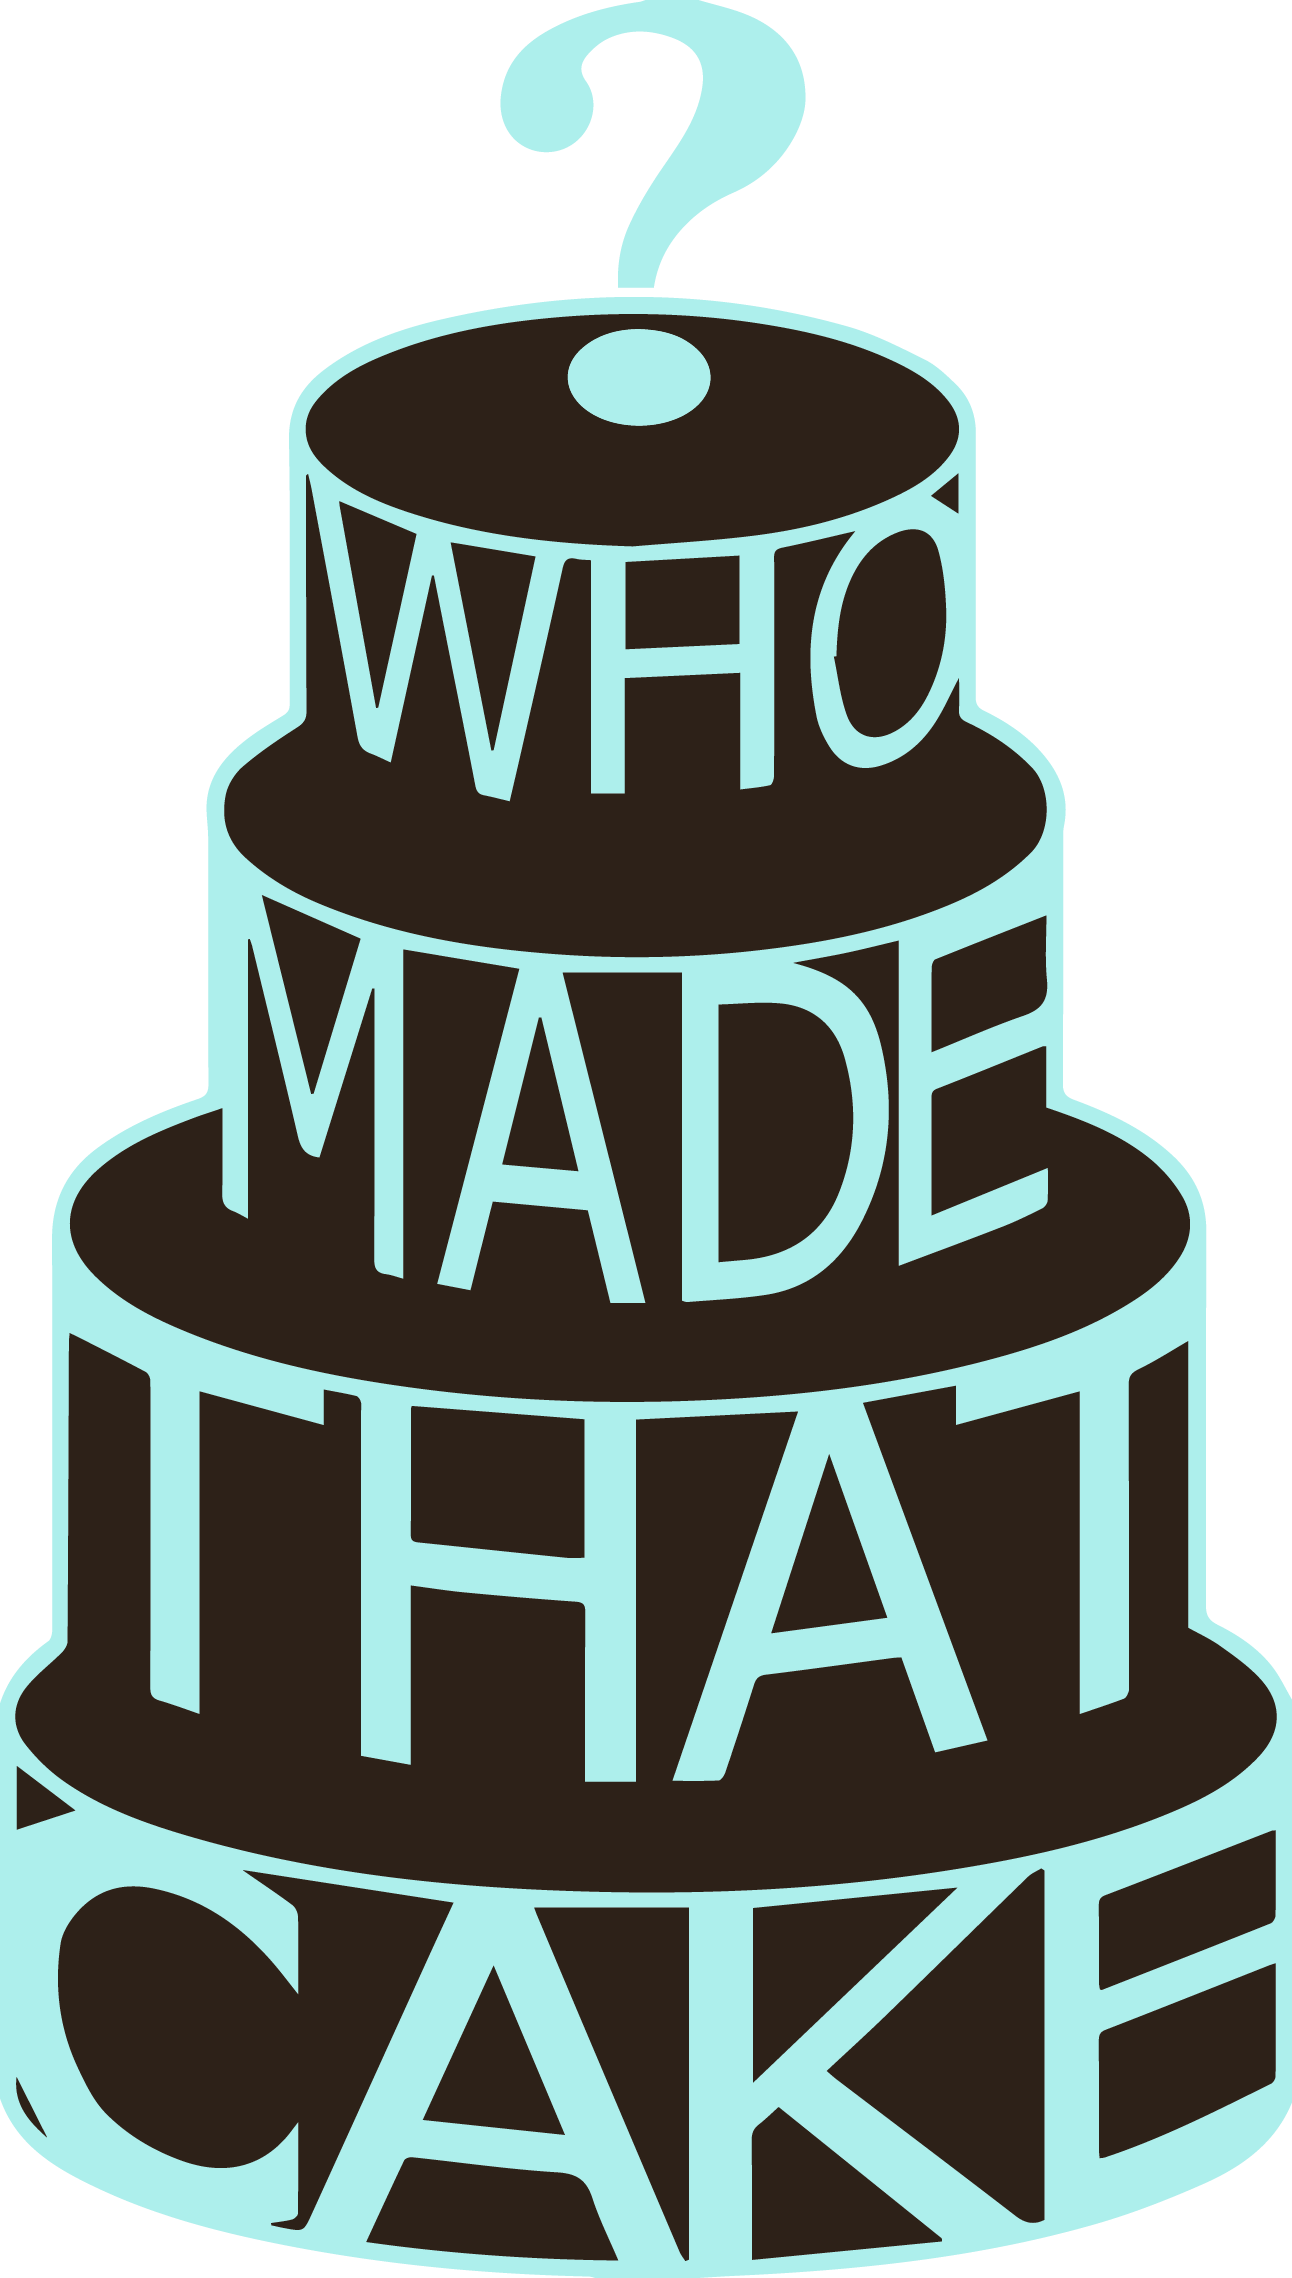 WHOMADETHATCAKE-LOGO-COLOR-PEPPERMINT.png